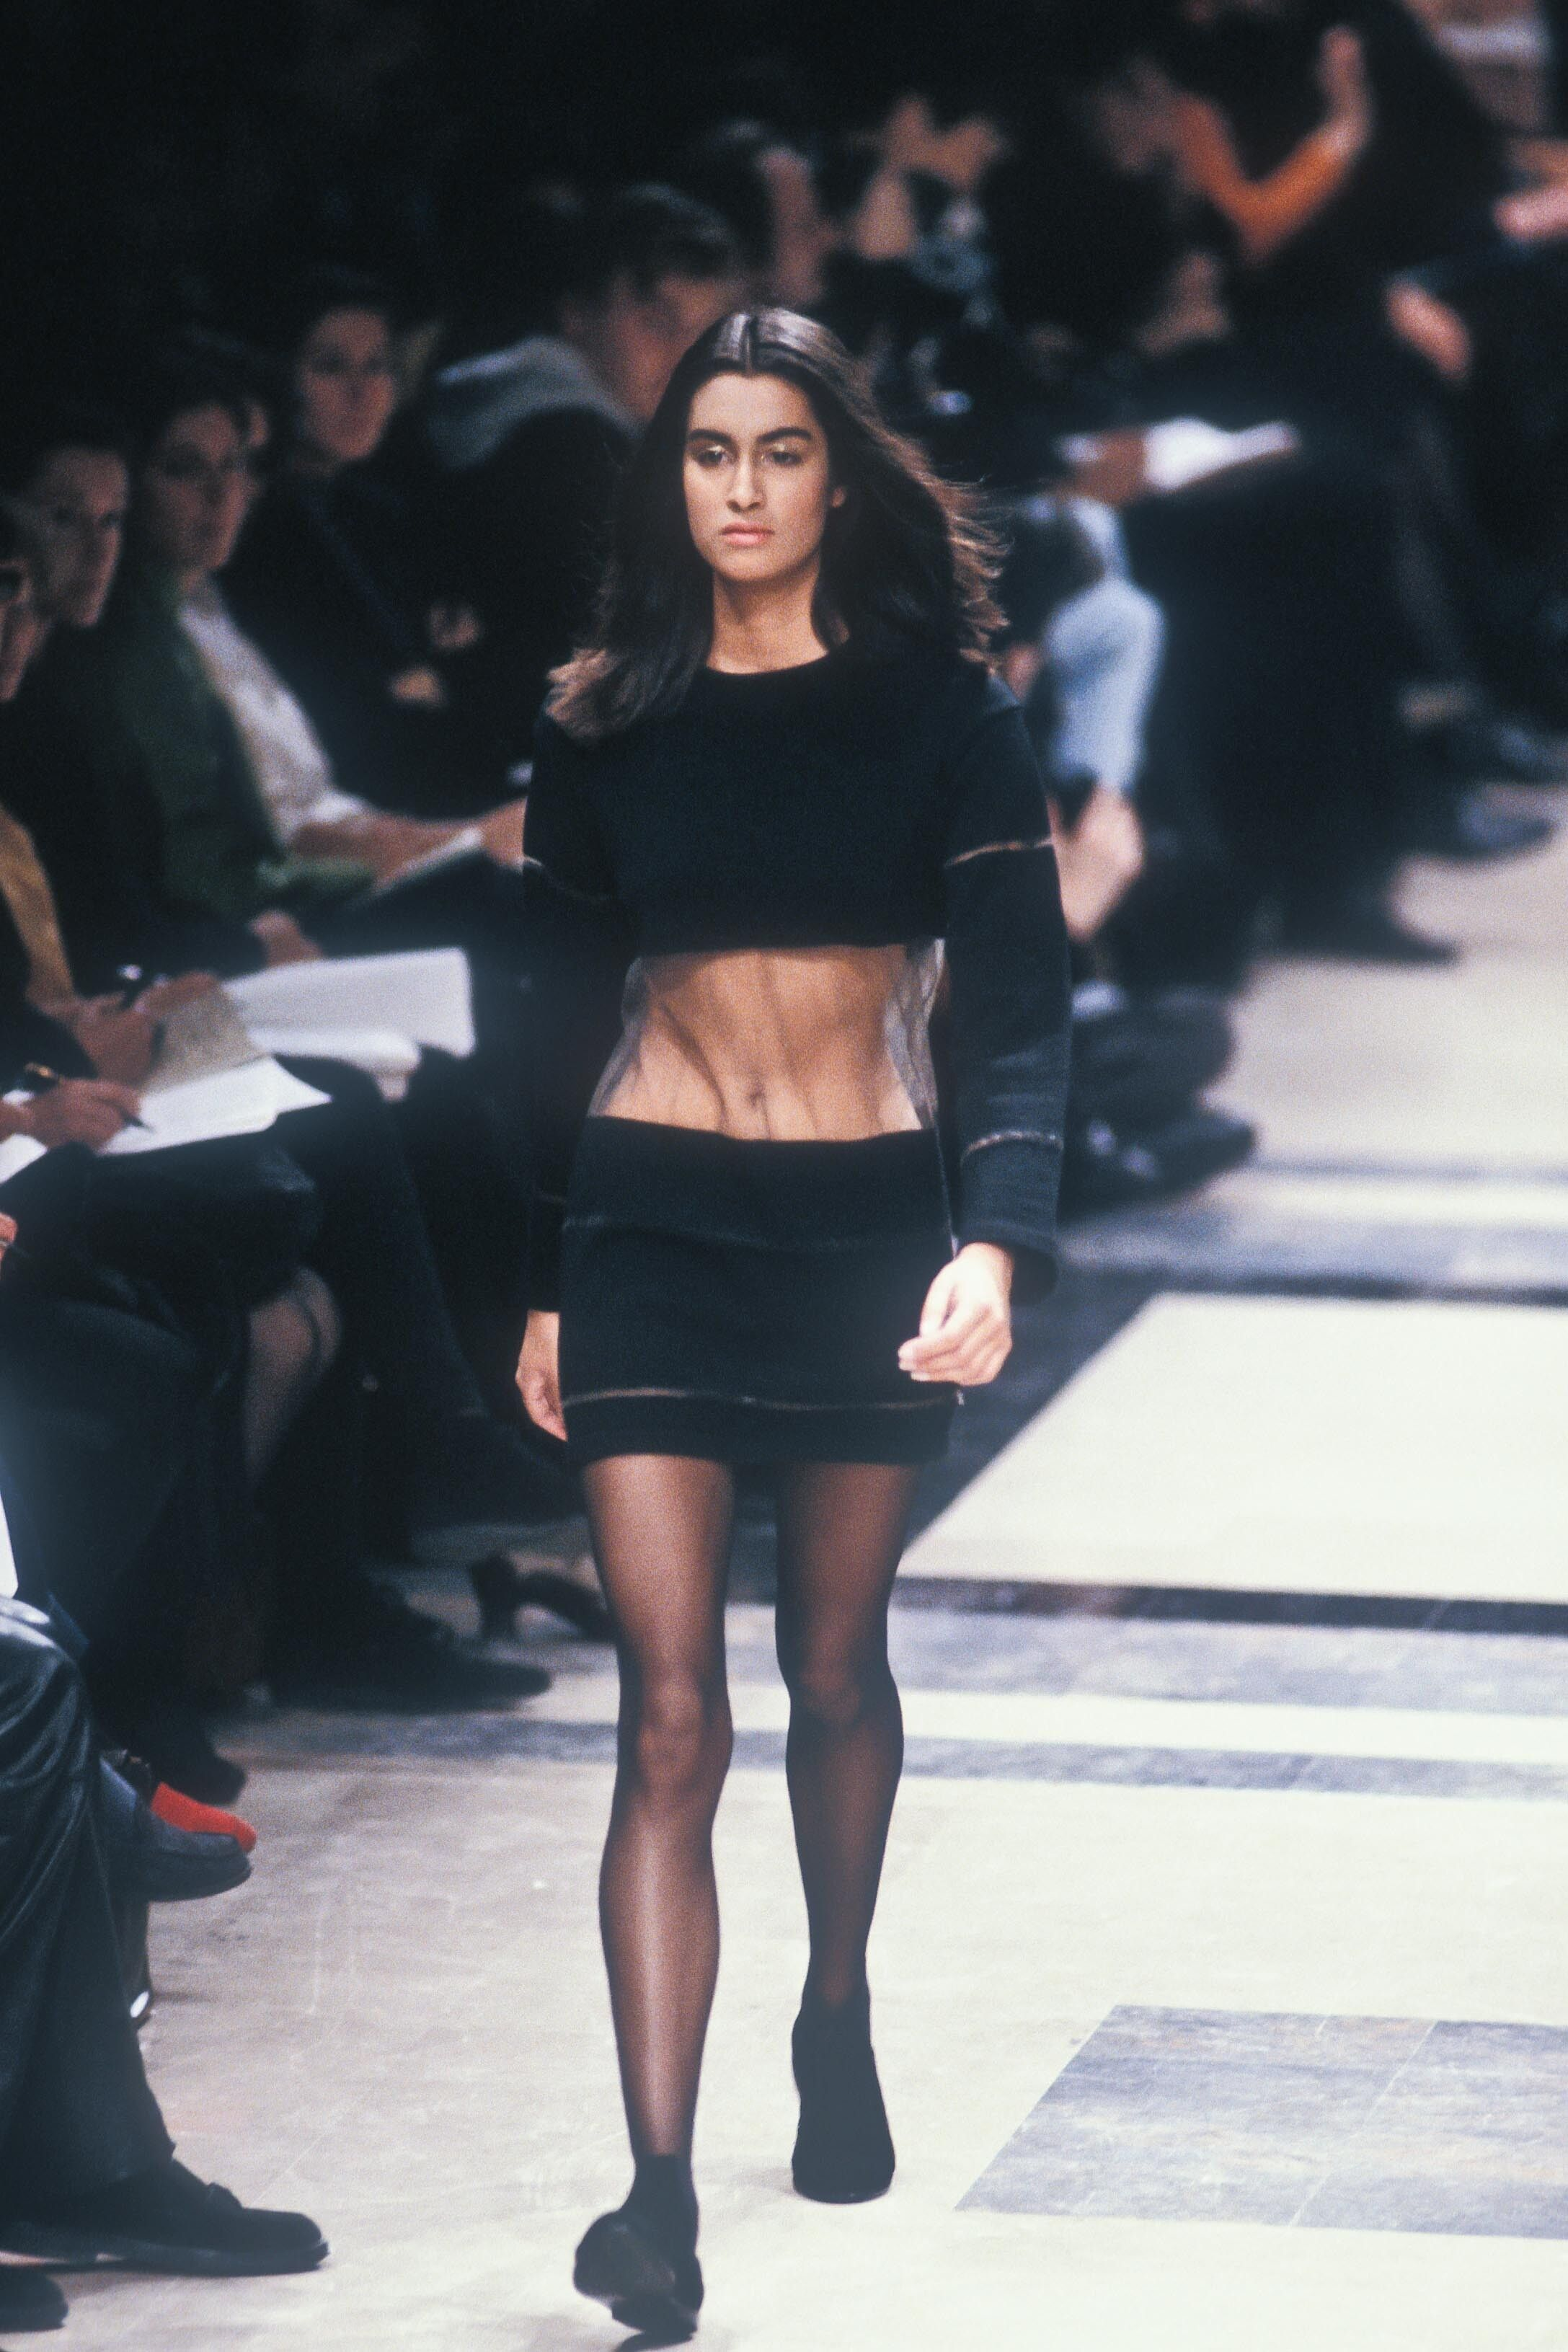 Helmut Lang In 2020 Fashion Cute Comfy Outfits Queen Fashion